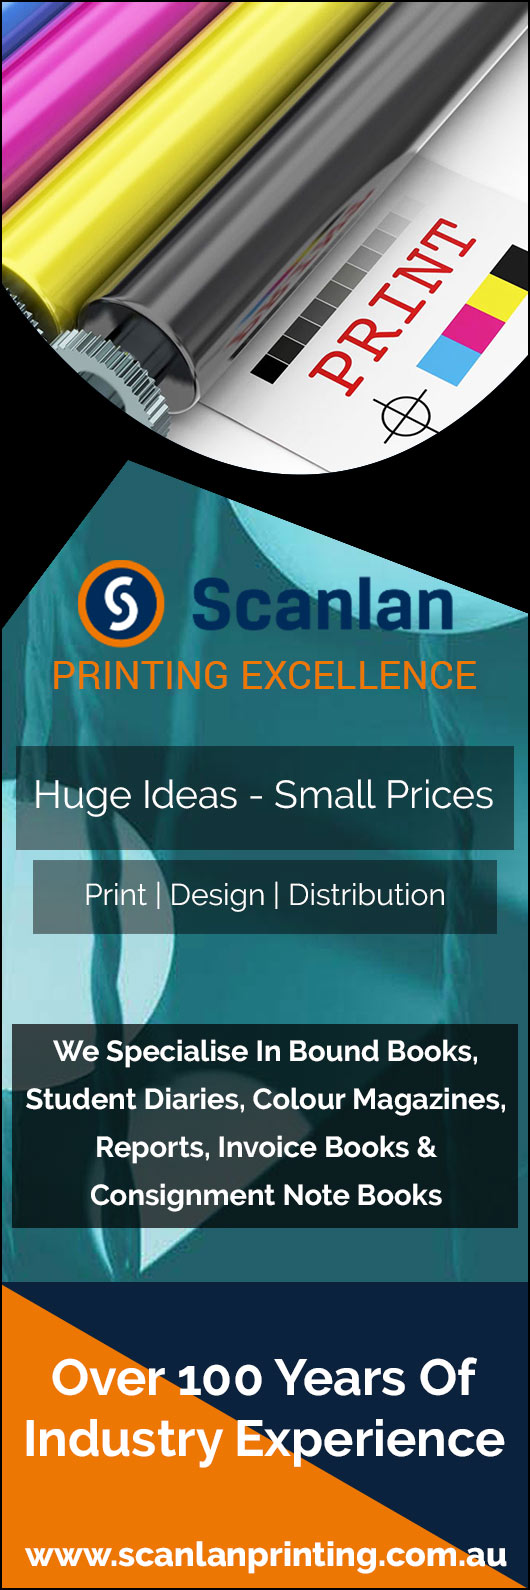 Scanlan printing printers supplies services 138 campbell st scanlan printing promotion reheart Images